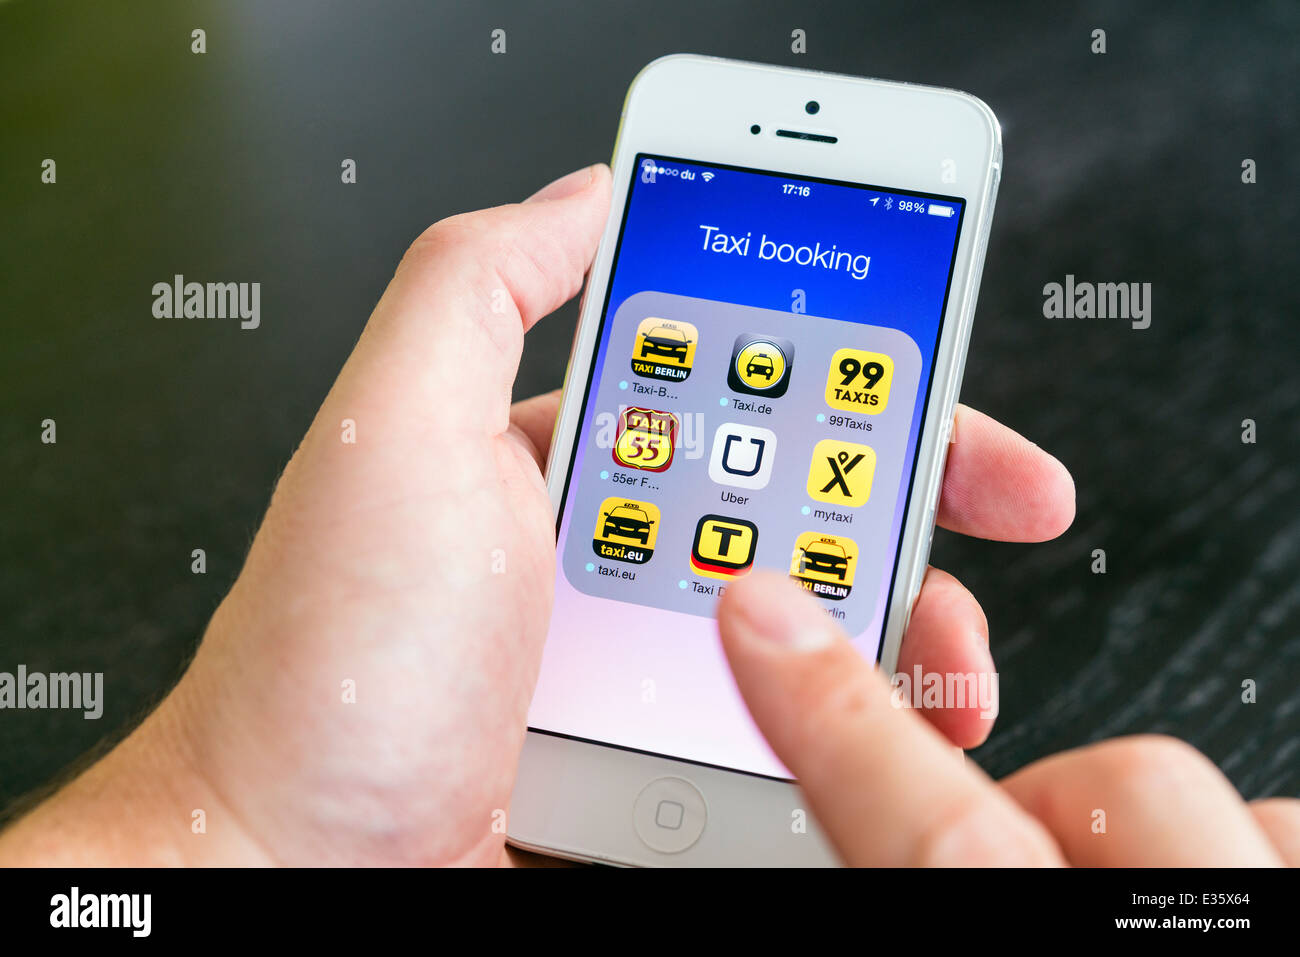 Detail of iPhone screen with many mobile apps for booking taxis - Stock Image